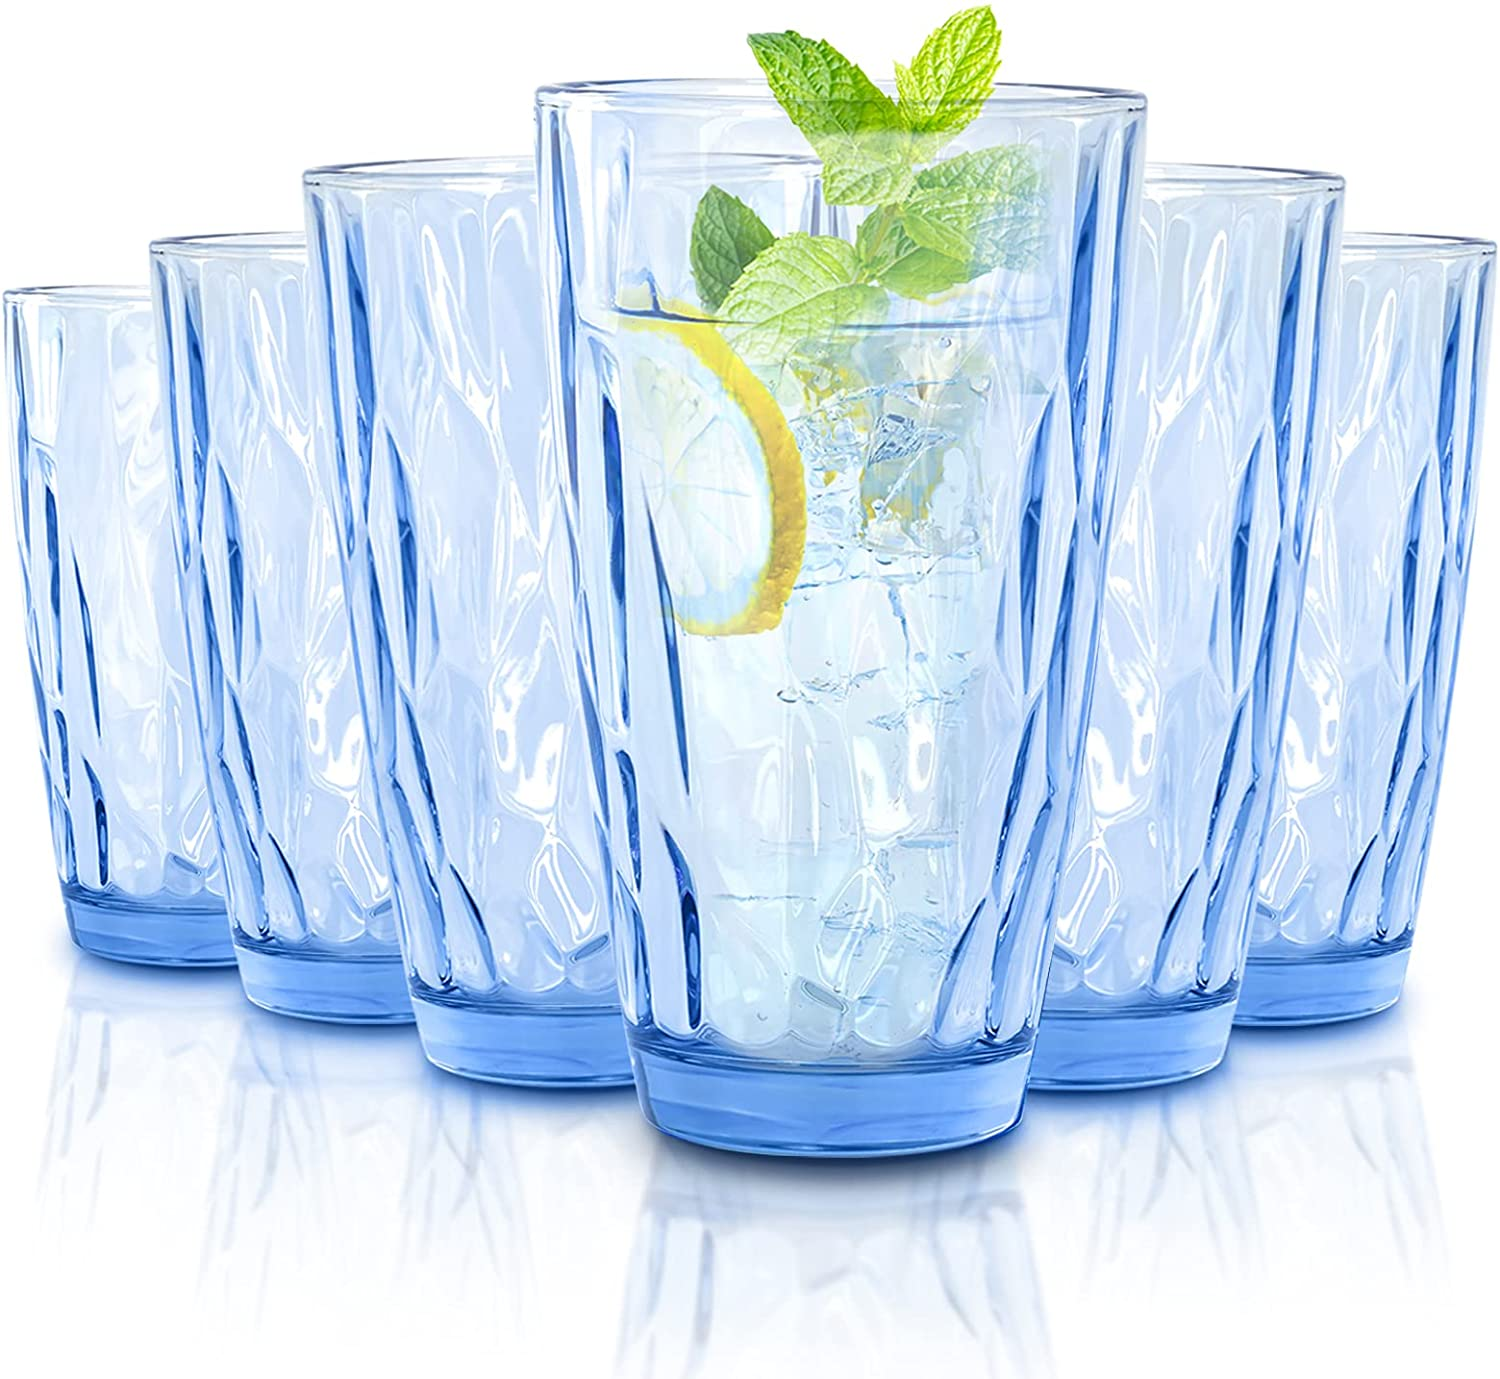 CREATIVELAND Highball Glass Tumbler Light Blue Set of 6, for Water,Cocktail,Juice,Beer,Iced Coffee,Clear Blue Glassware for Bar Kitchen,Thick & Heavy Glass Drinking Glasses with Heavy Base 16oz/450ML